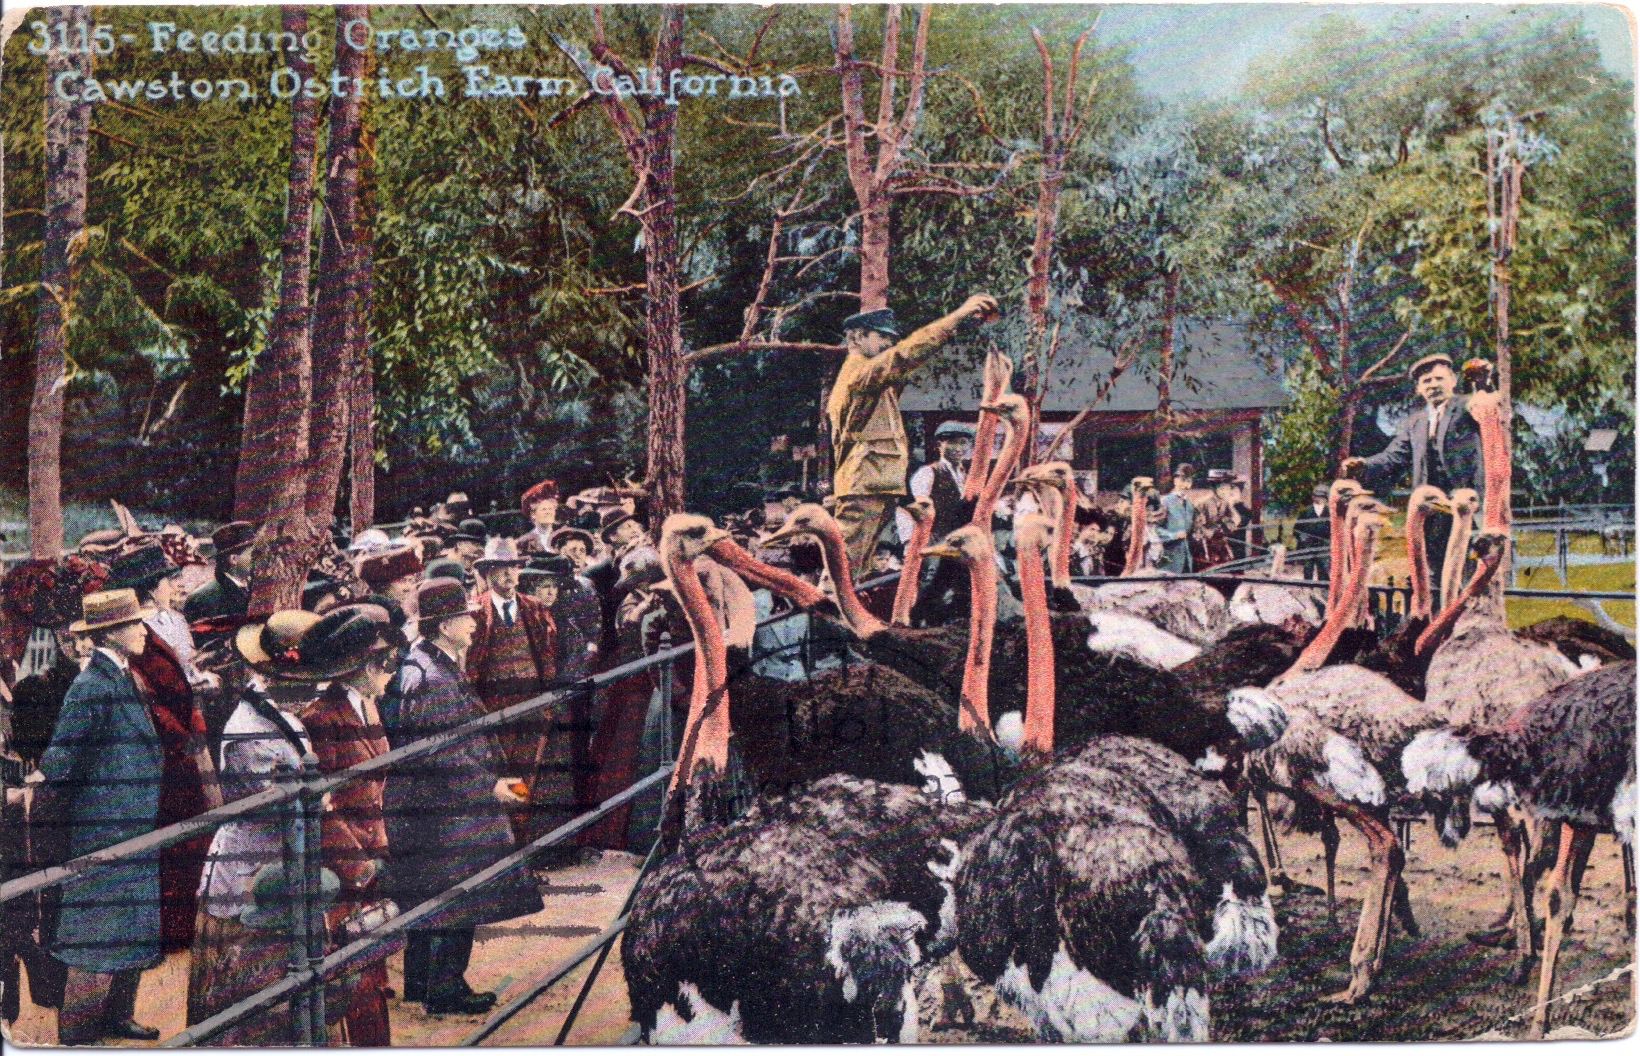 Feeding time at Southern California's ostrich farms was often a highlight. Vistiors enjoyed watching whole oranges slide down the birds' gullets. Postcard courtesy of the David Boule Collection.